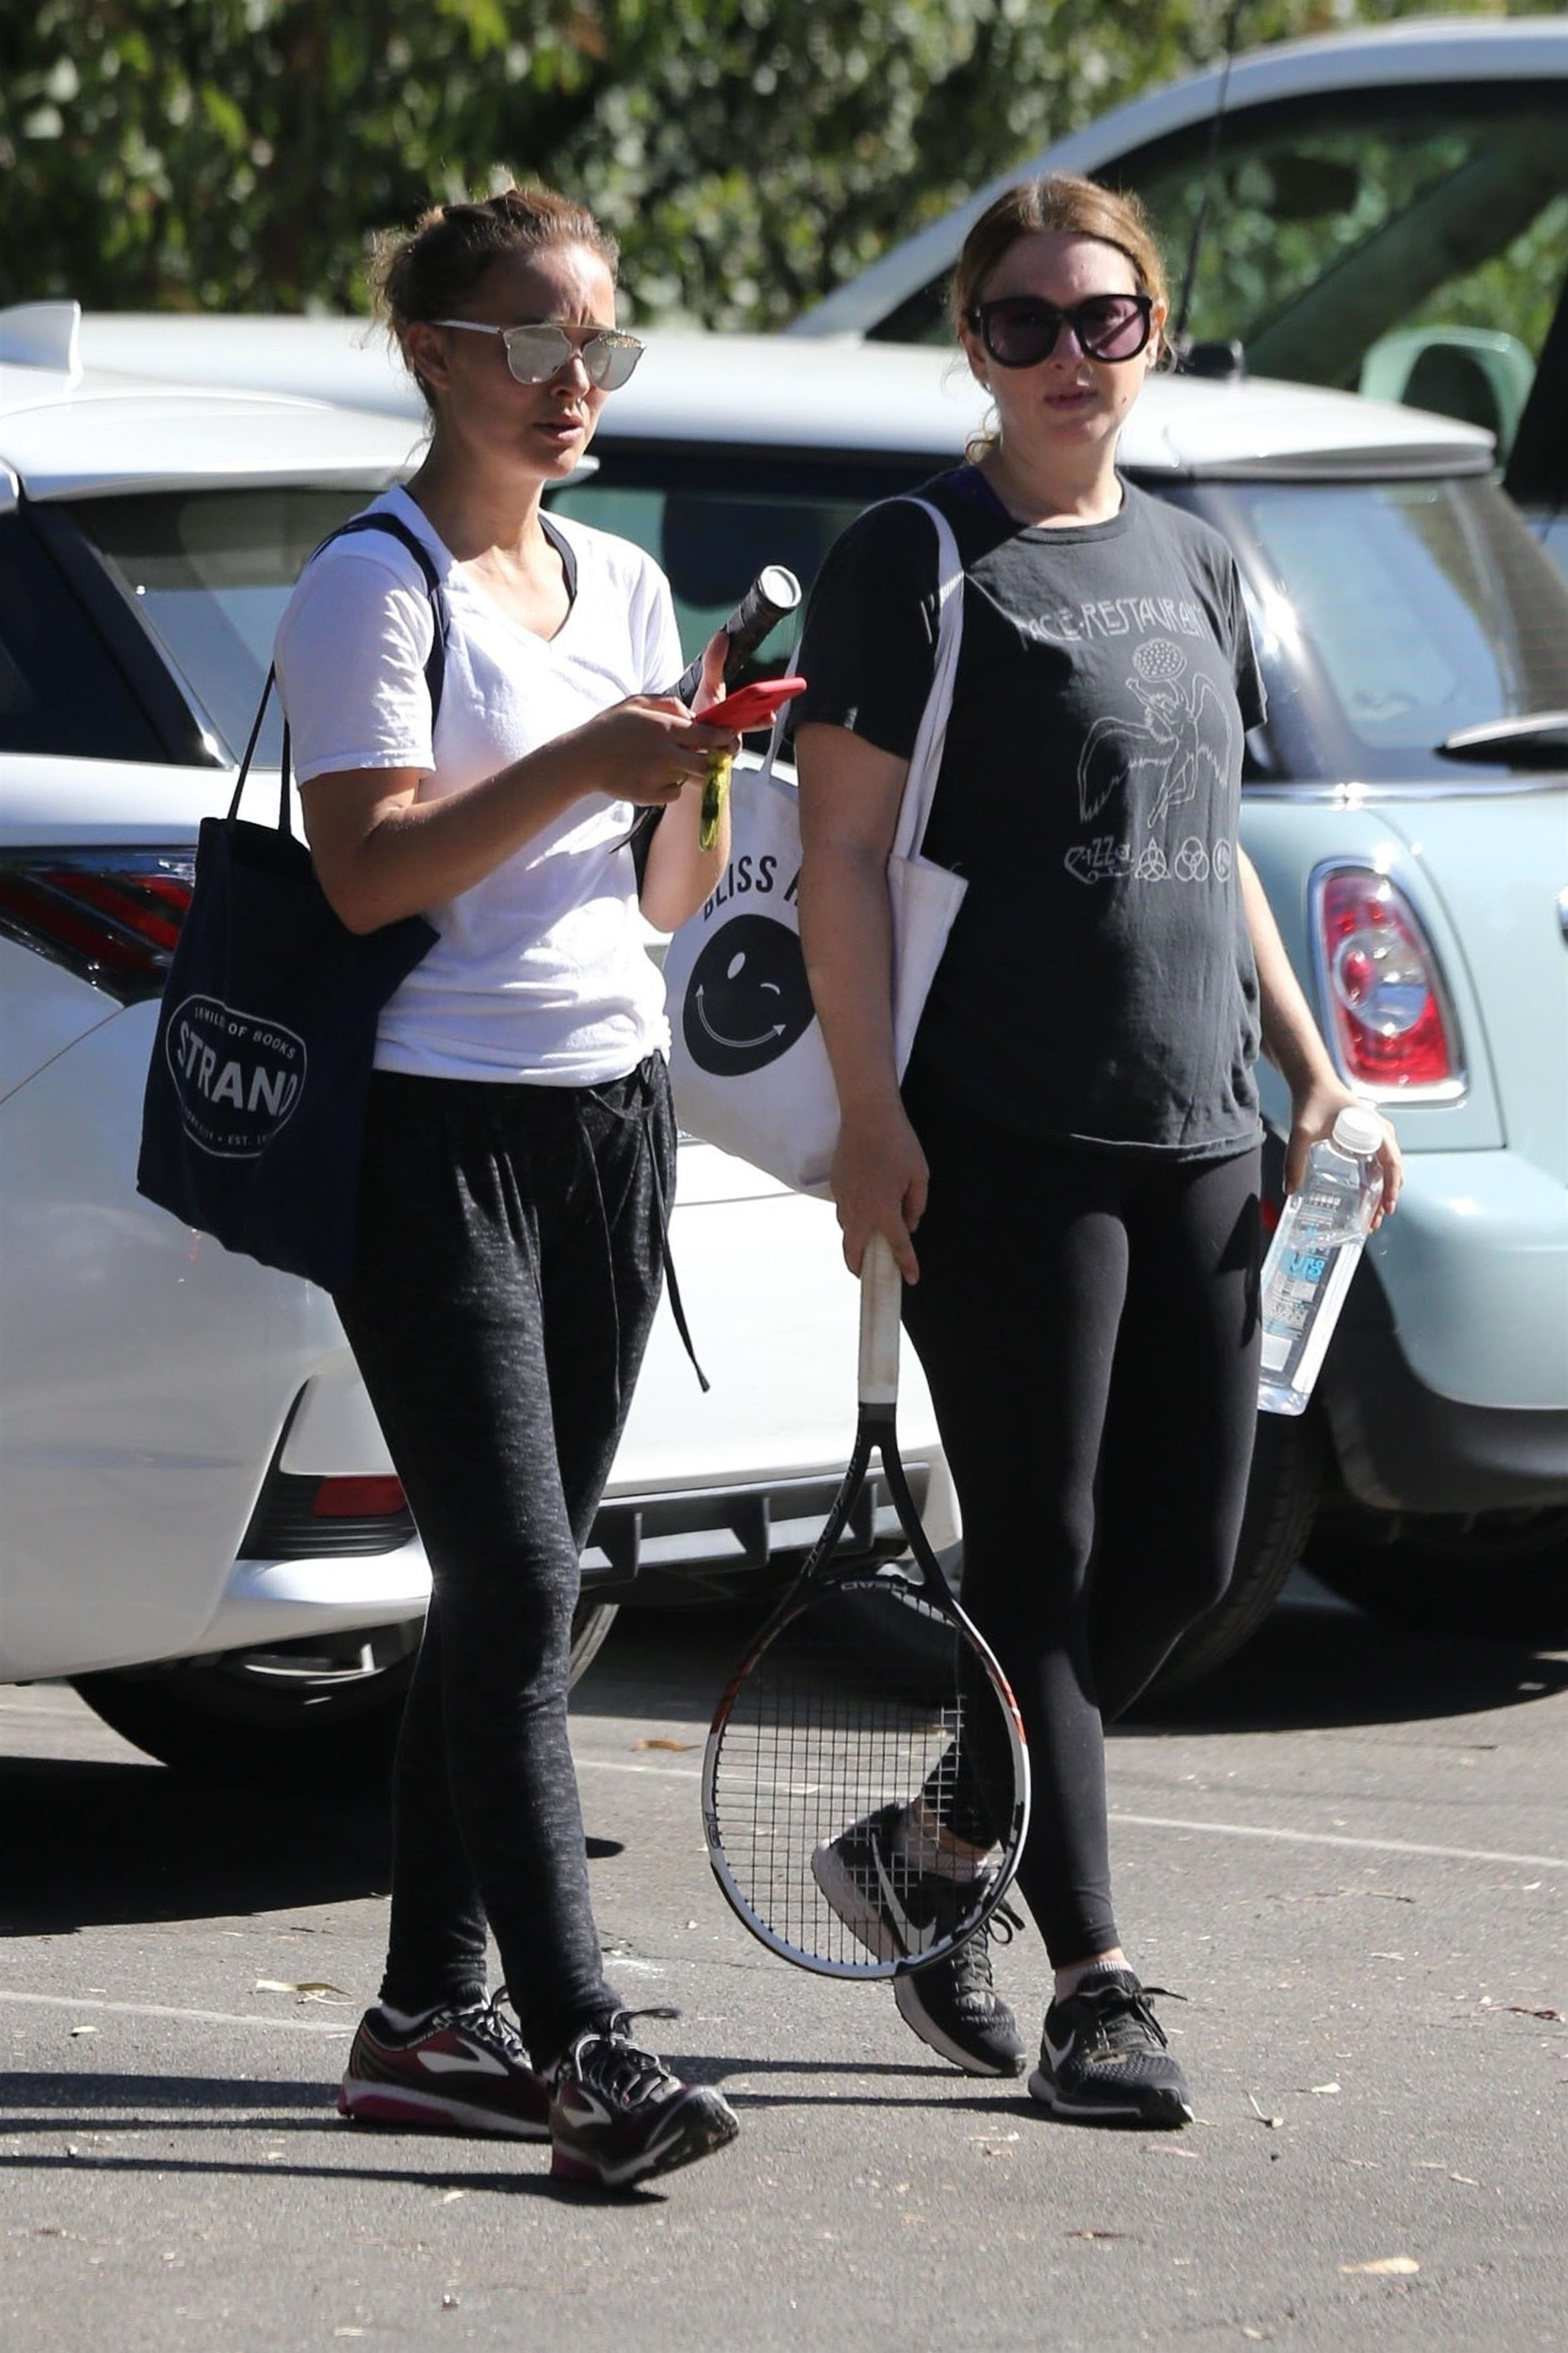 Los Angeles, CA  - *EXCLUSIVE*  - Actress Natalie Portman and a friend enjoy an early morning tennis lesson in Los Angeles. Natalie was all smiles as she did her best to hit the balls back across the court.  Pictured: Natalie Portman  BACKGRID USA 27 SEPTEMBER 2017   USA: +1 310 798 9111 / usasales@backgrid.com  UK: +44 208 344 2007 / uksales@backgrid.com  *UK Clients - Pictures Containing Children Please Pixelate Face Prior To Publication*, Image: 350751753, License: Rights-managed, Restrictions: , Model Release: no, Credit line: Profimedia, AKM-GSI